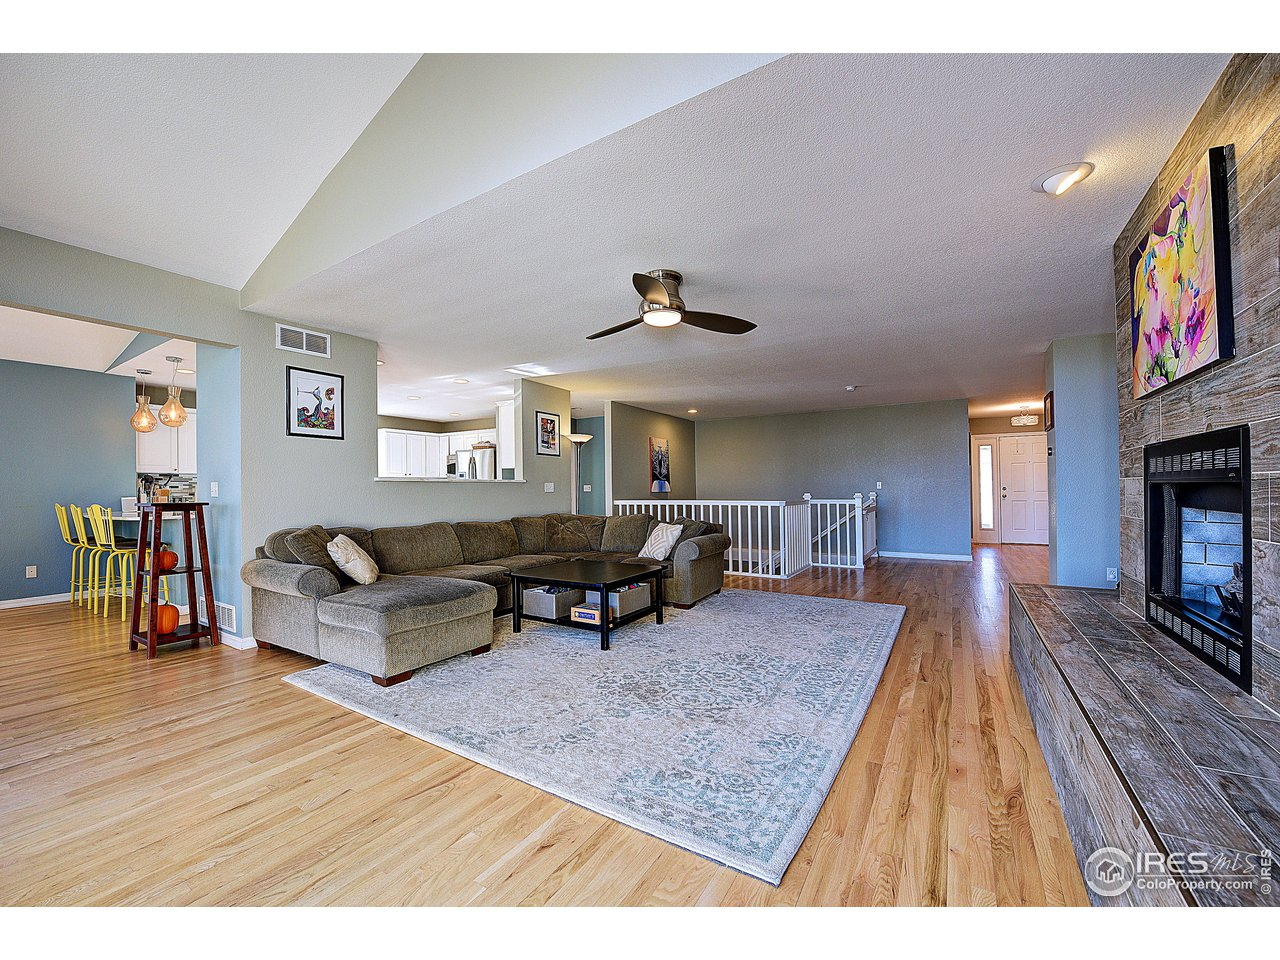 Very open floor plan w/ oak floors!